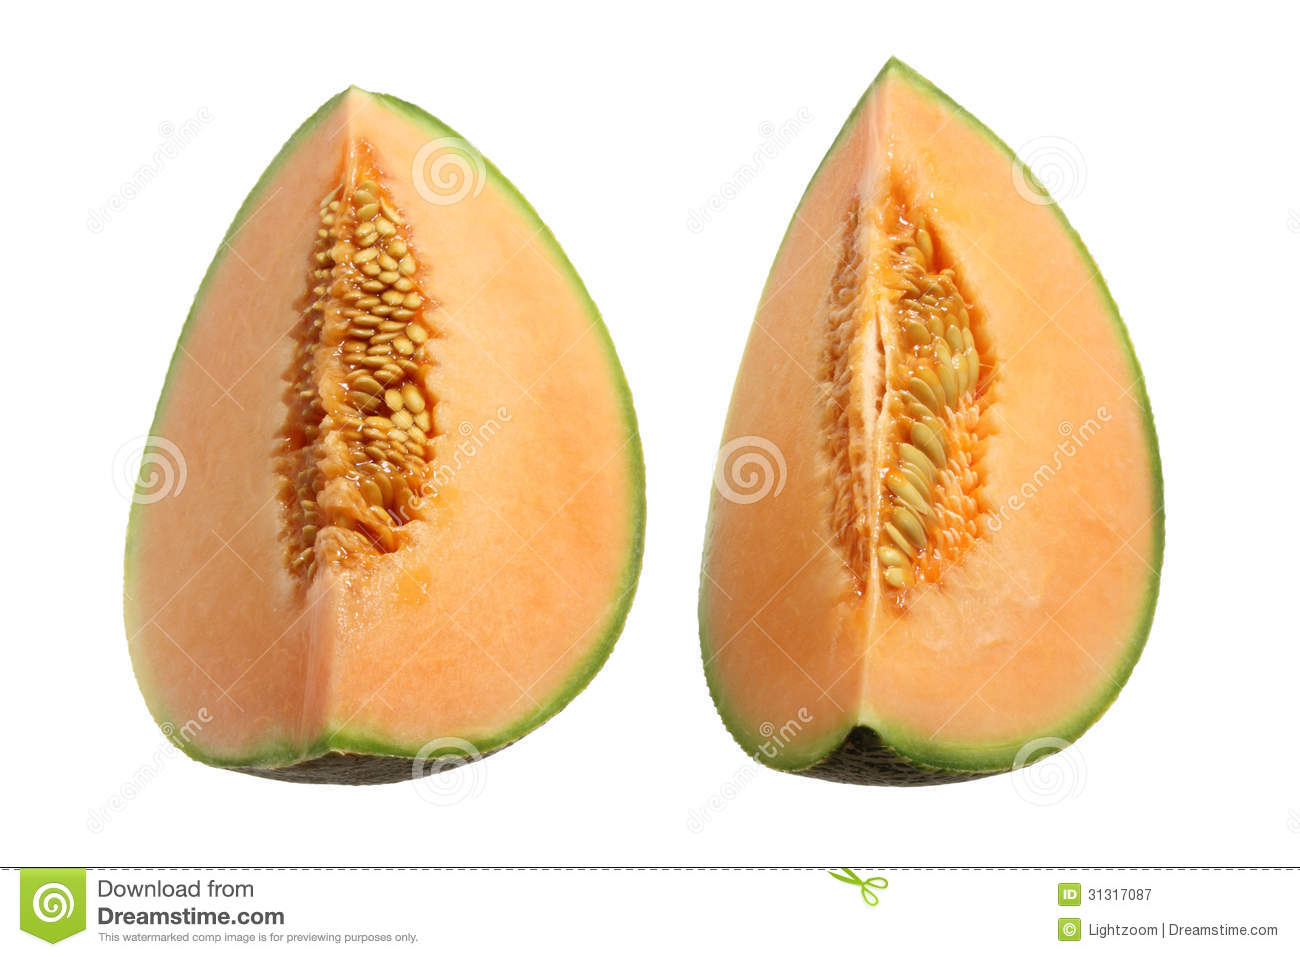 background of rock melon Download the royalty-free photo group of melons and pomelo isolated on white background created by groupcheers at the lowest price on fotoliacom browse our cheap image bank online to find the perfect stock photo for your marketing projects.